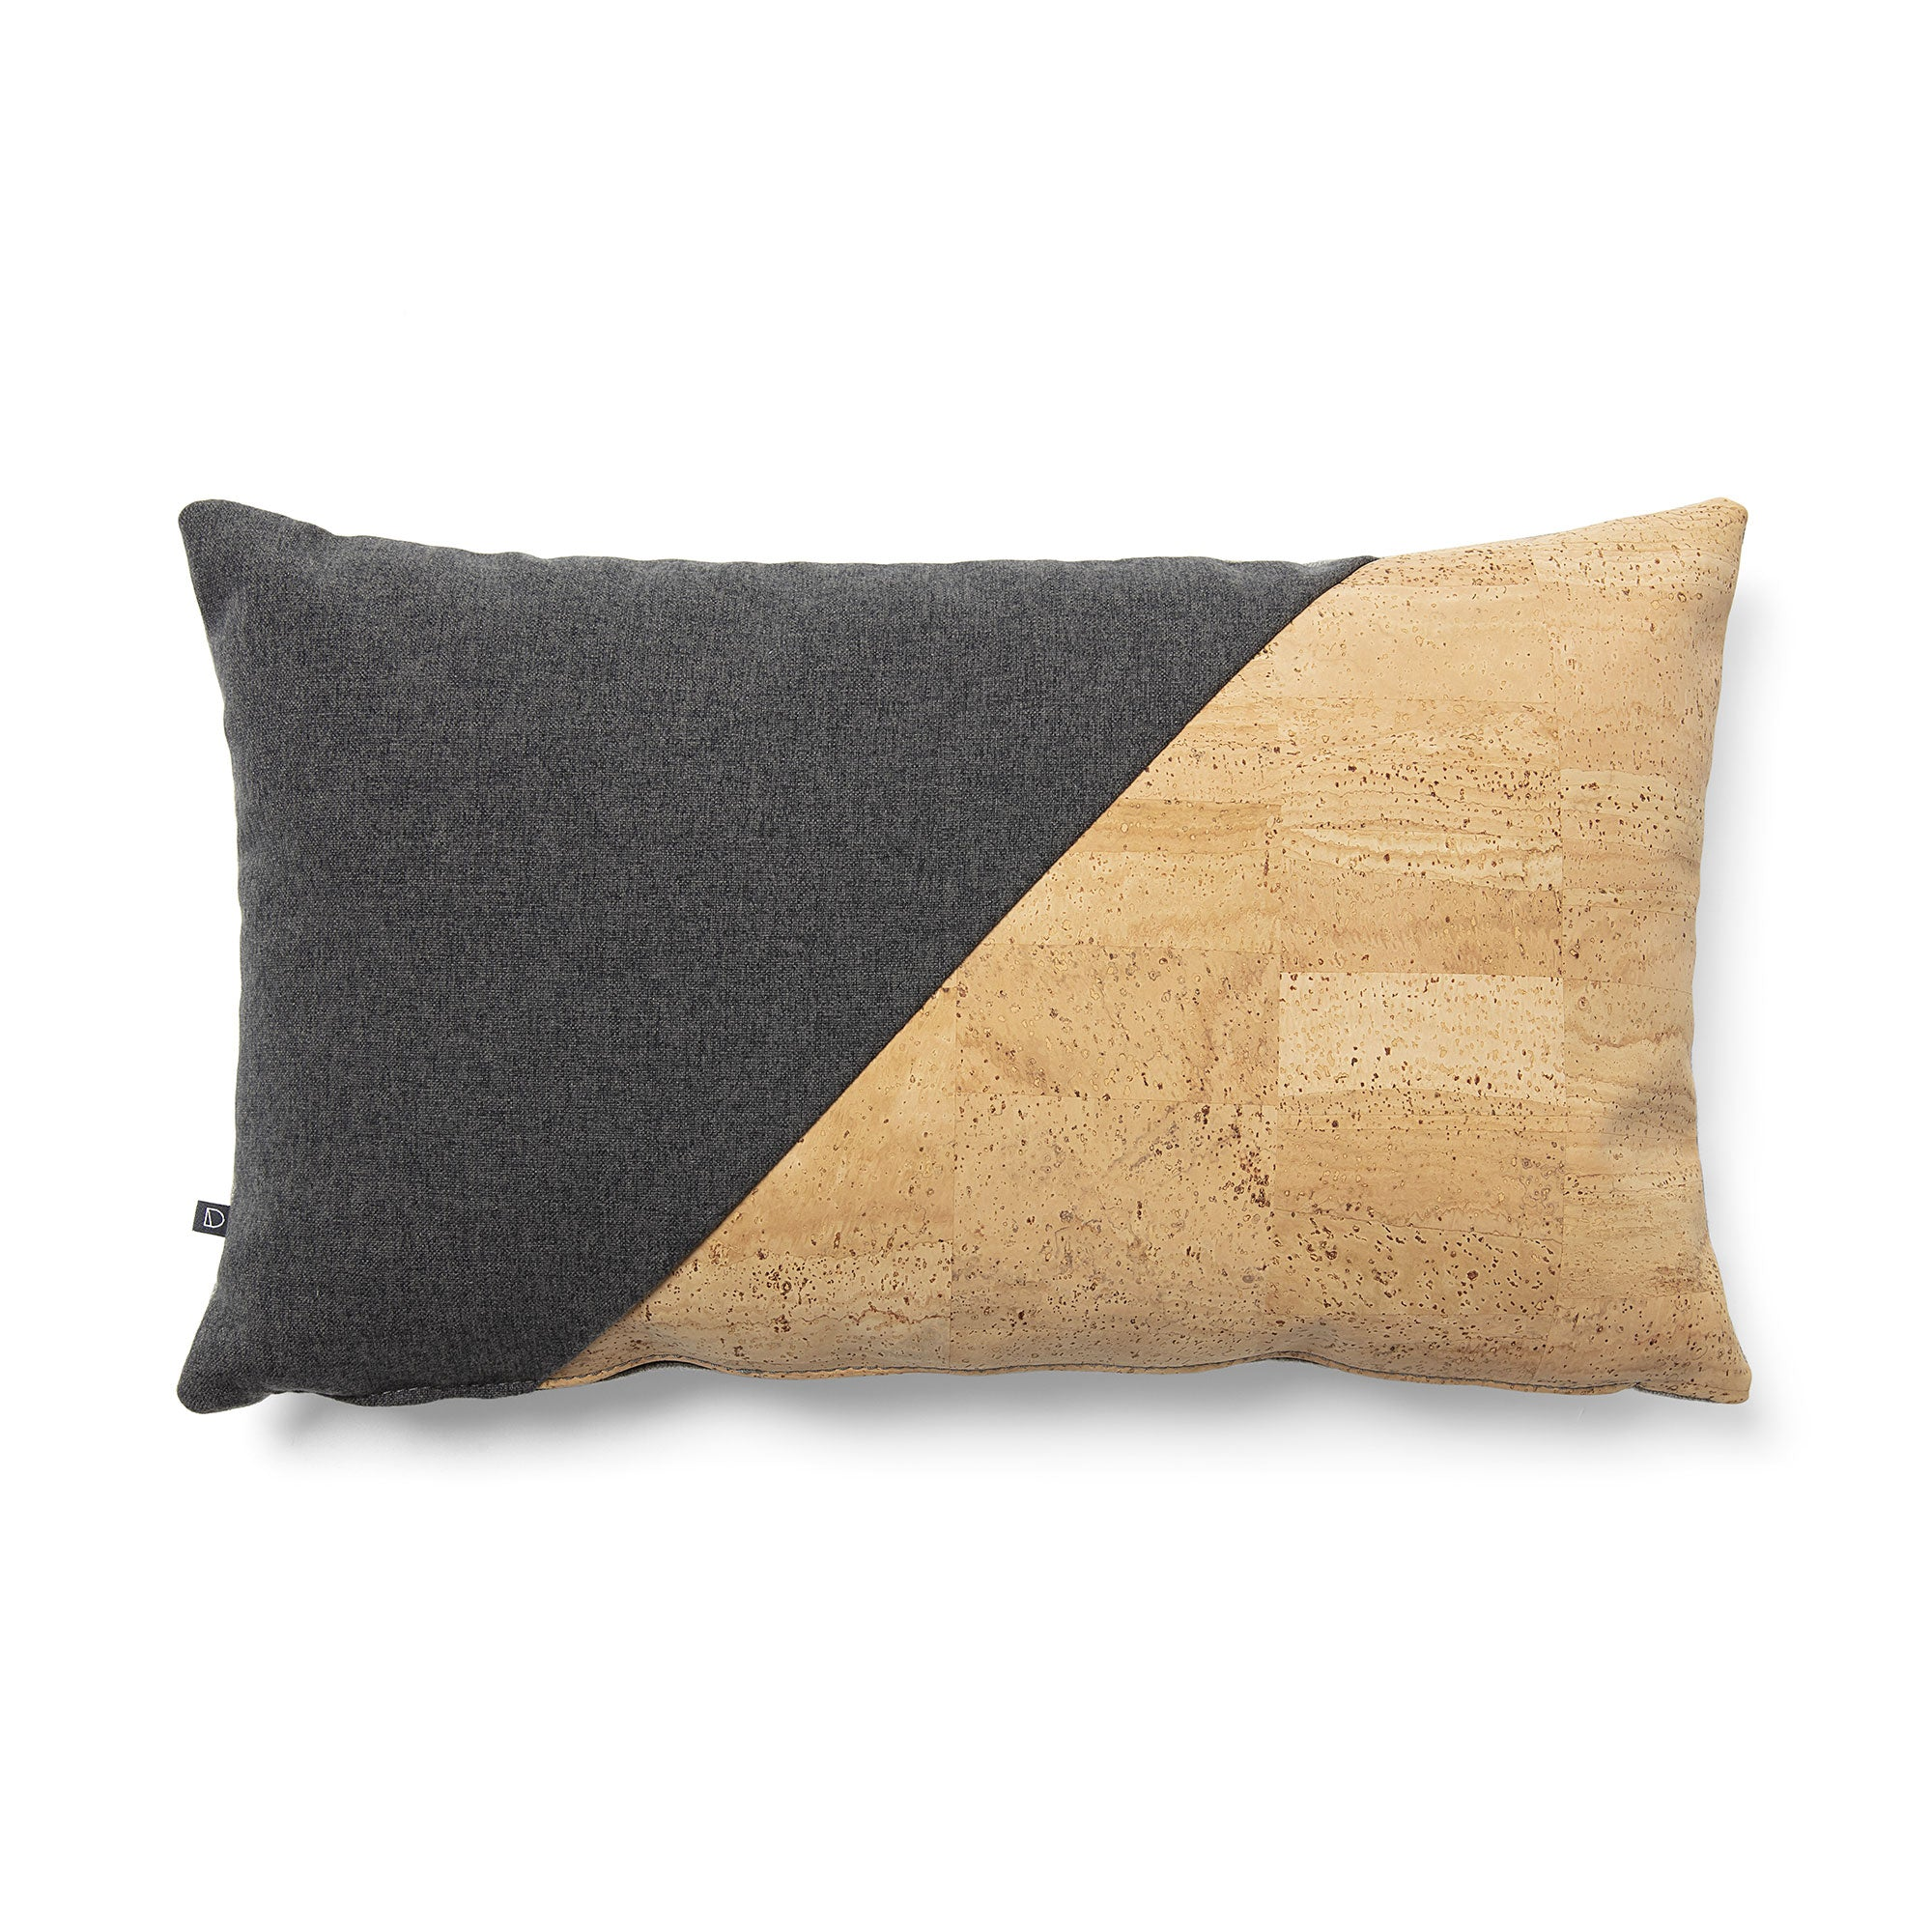 Maia Cushion - Cork & Graphite and Light Grey Fabric 30 x 50 cm, Cushion - Home-Buy Interiors